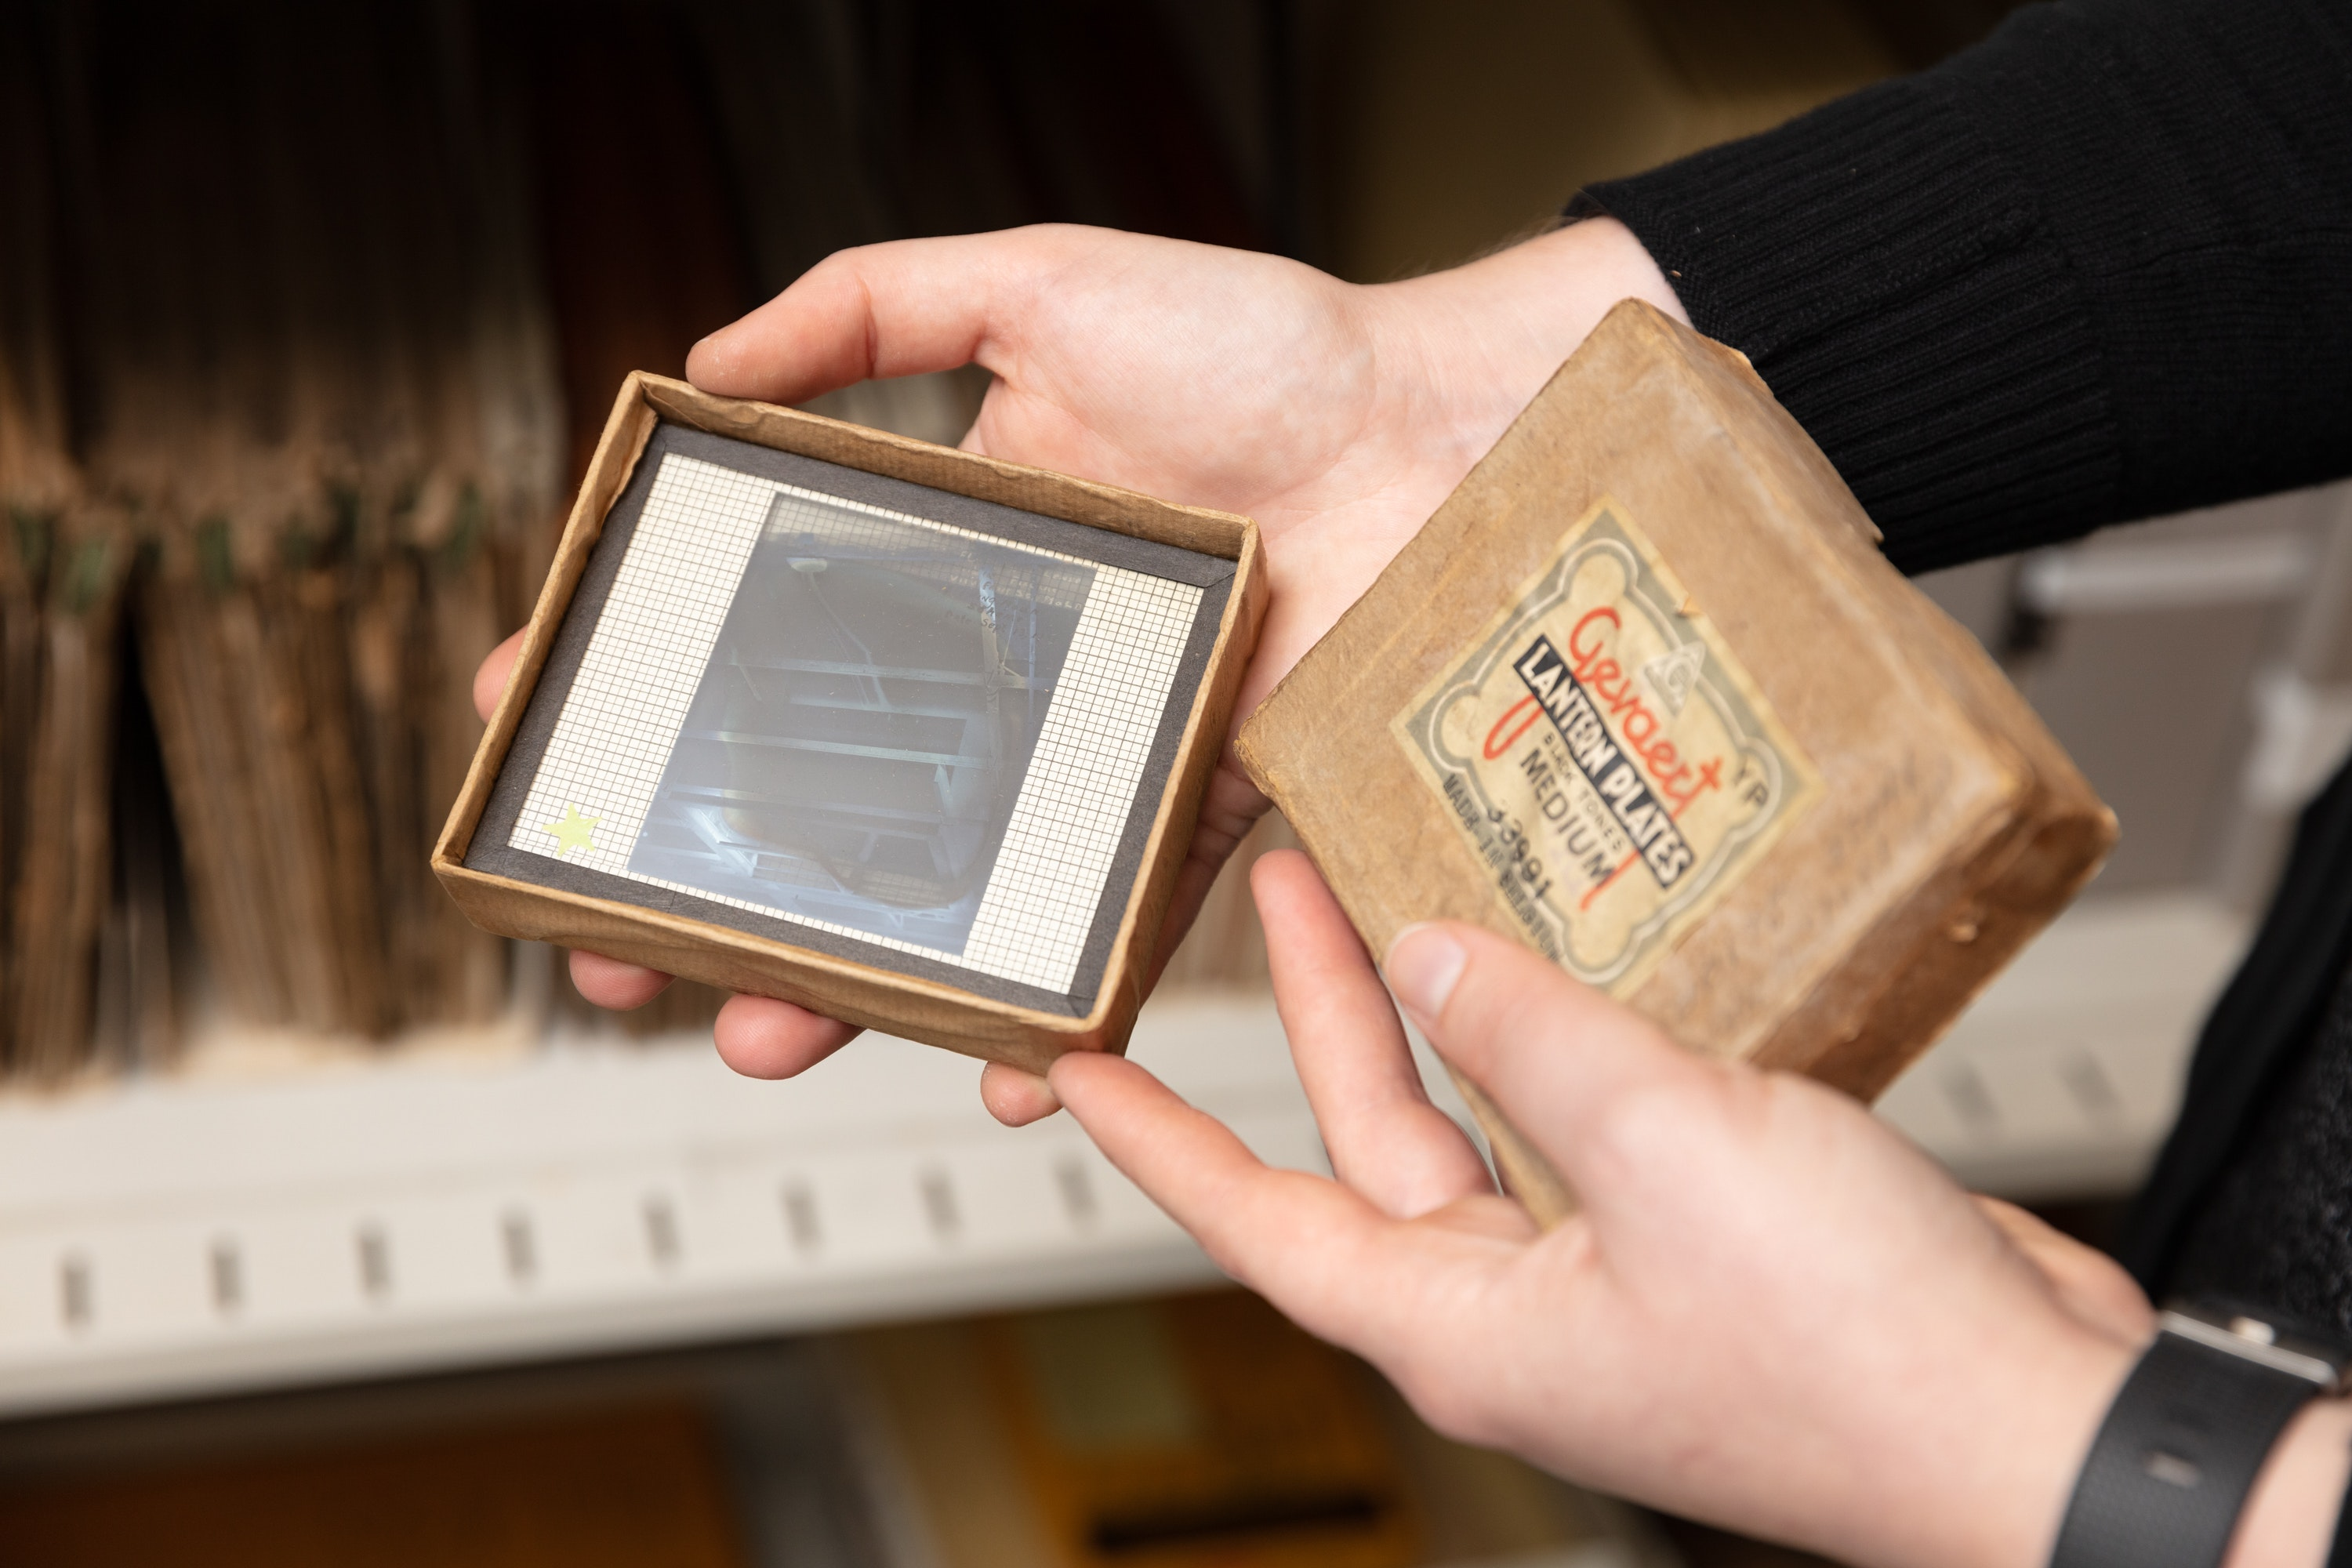 Archivist Shelby Silvernell holds an old glass negative called a Lantern Slide